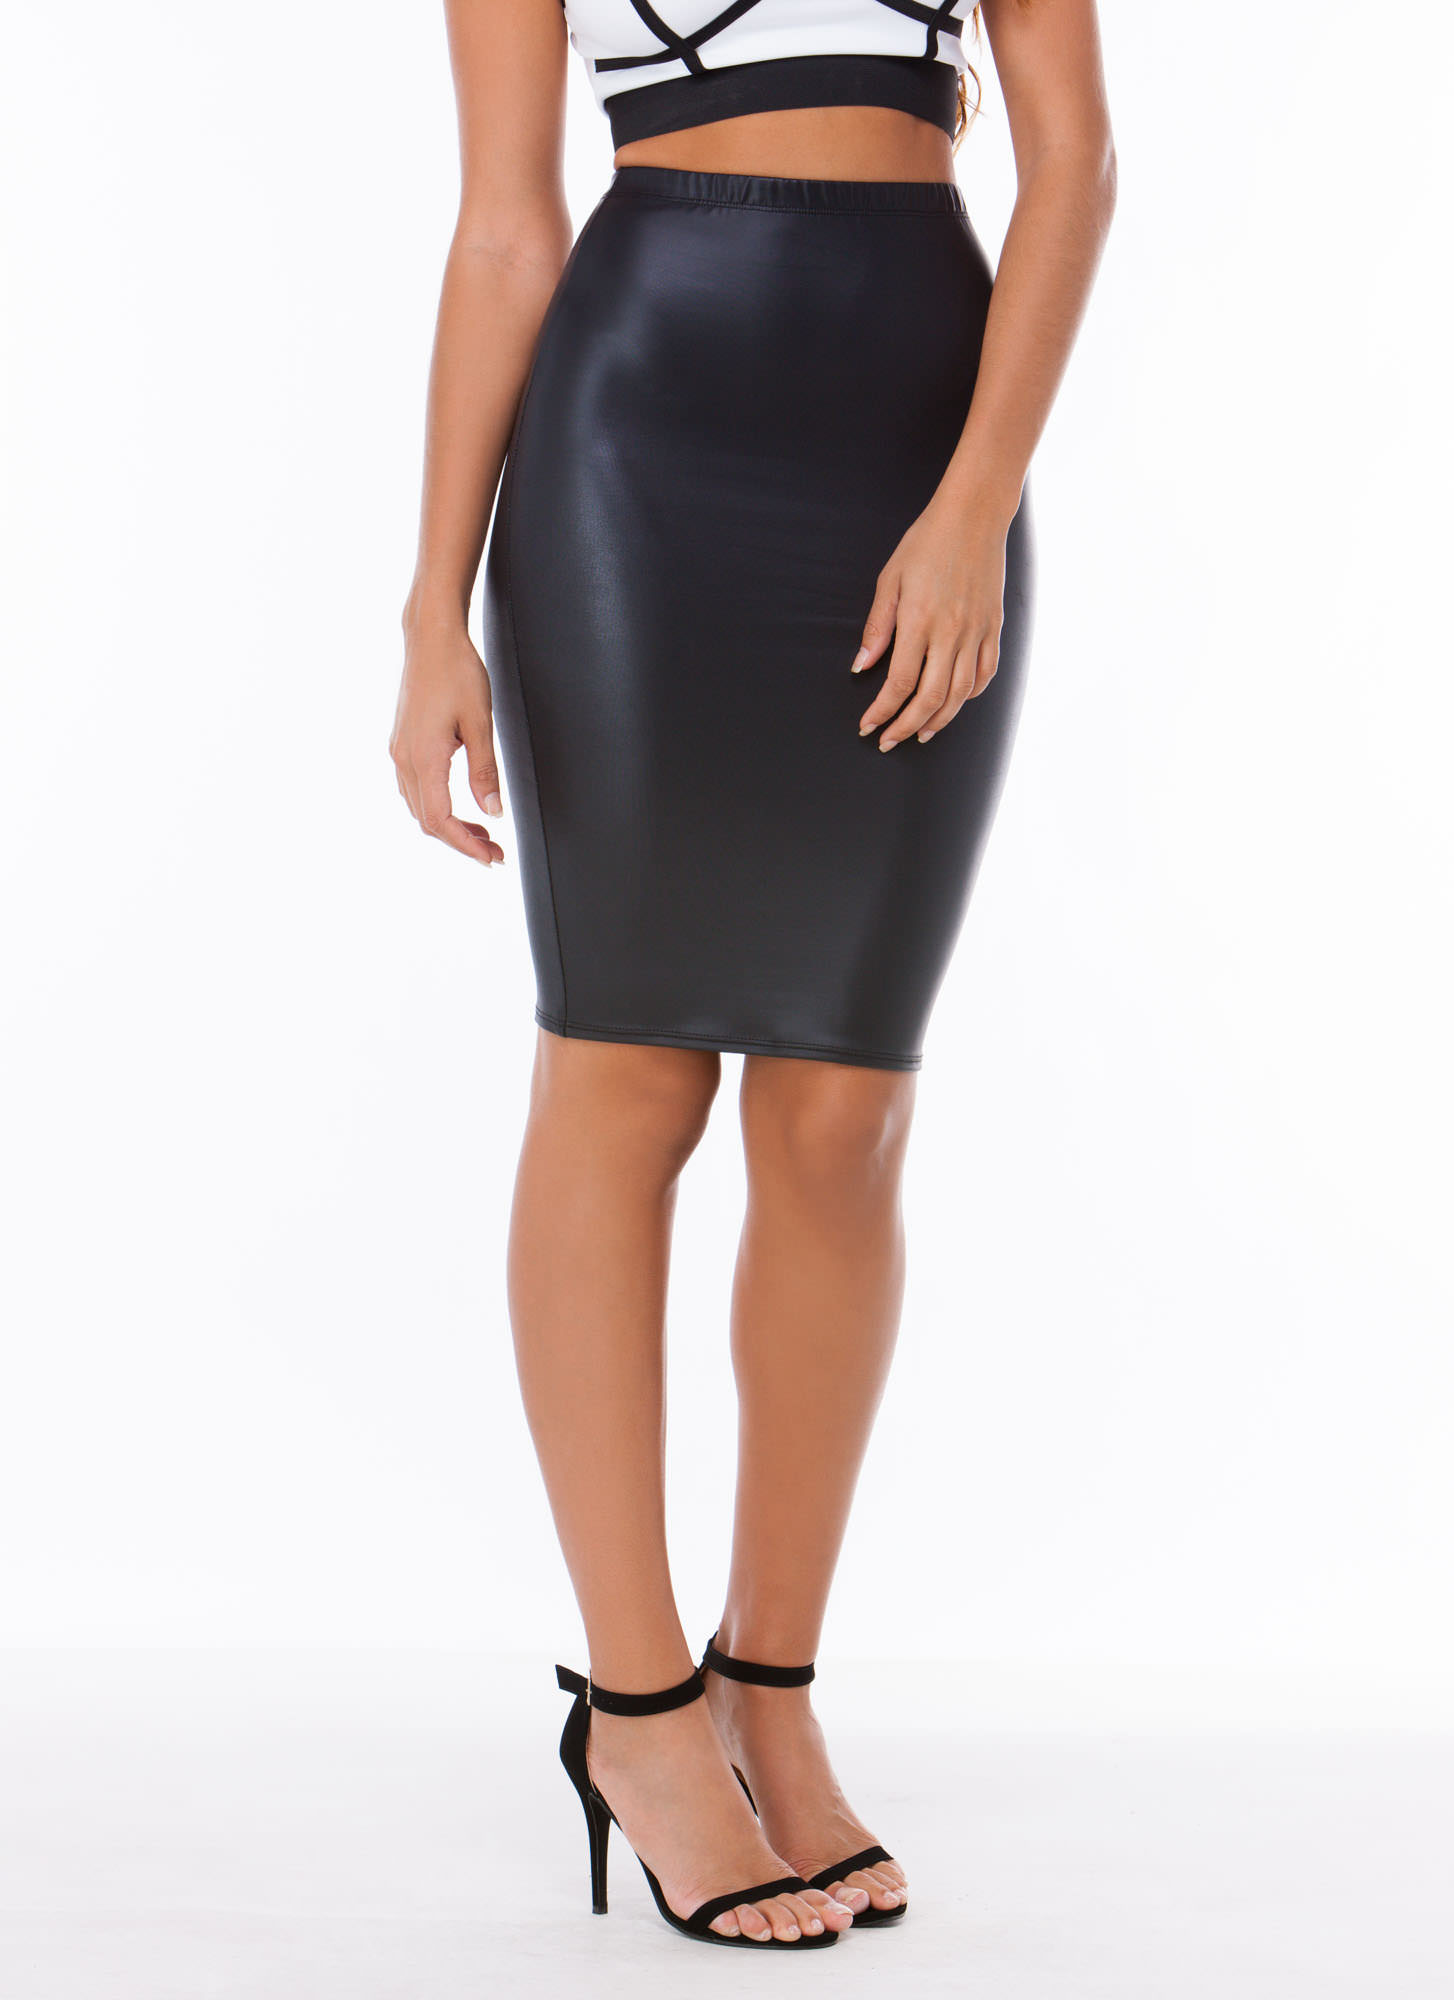 Pencil It In Faux Leather Skirt BLACK - GoJane.com